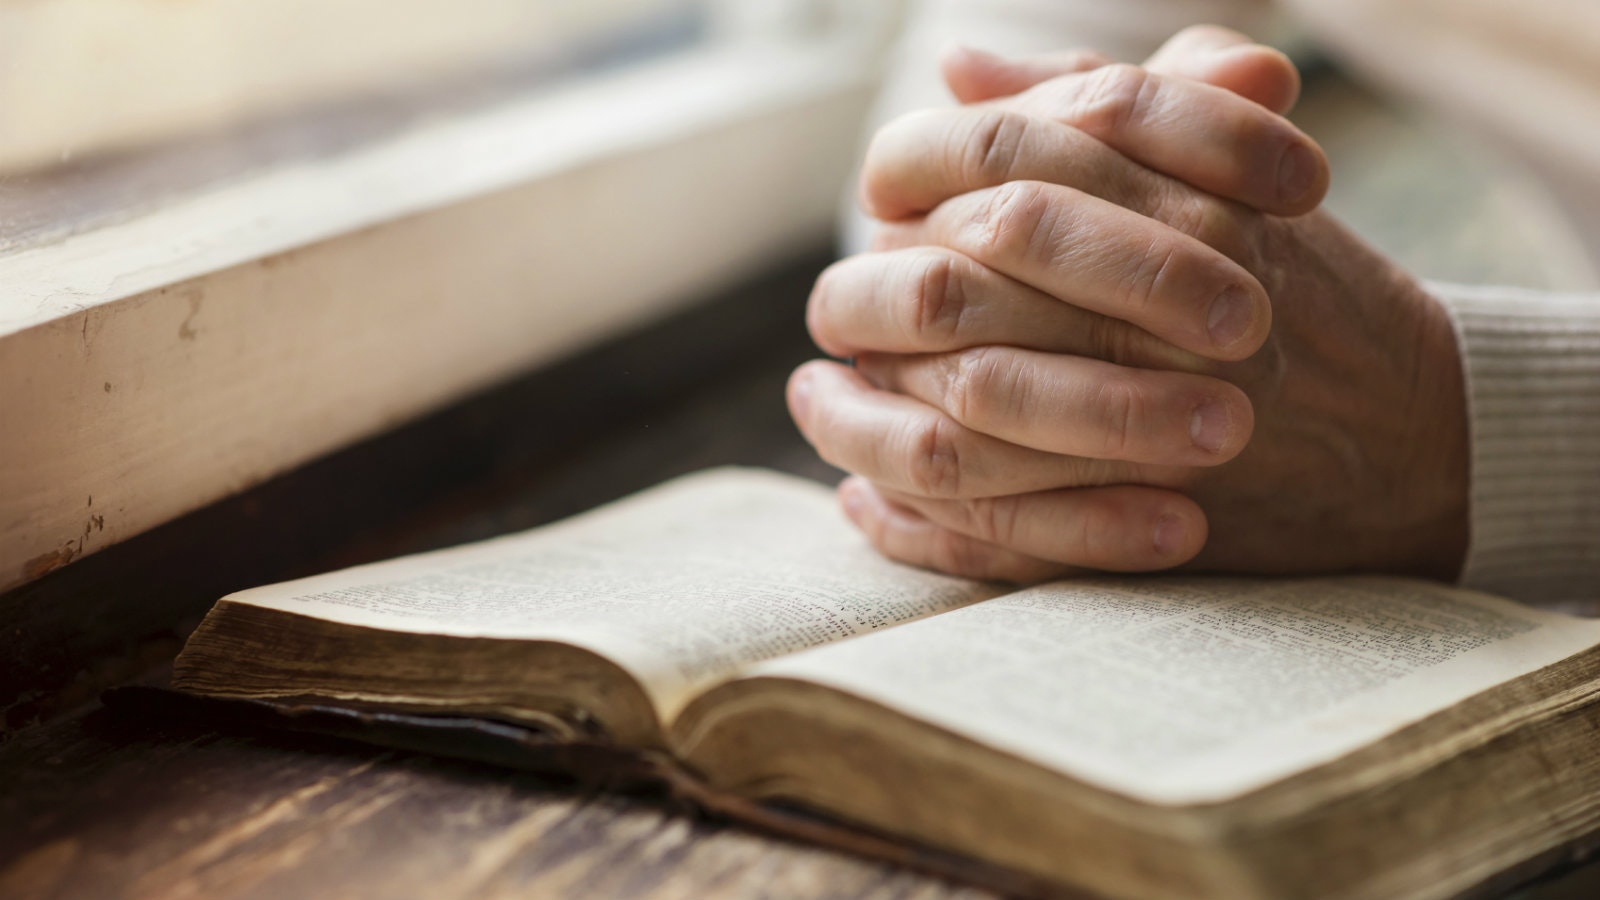 Speaking to God, Enhancing Our Personal Prayer